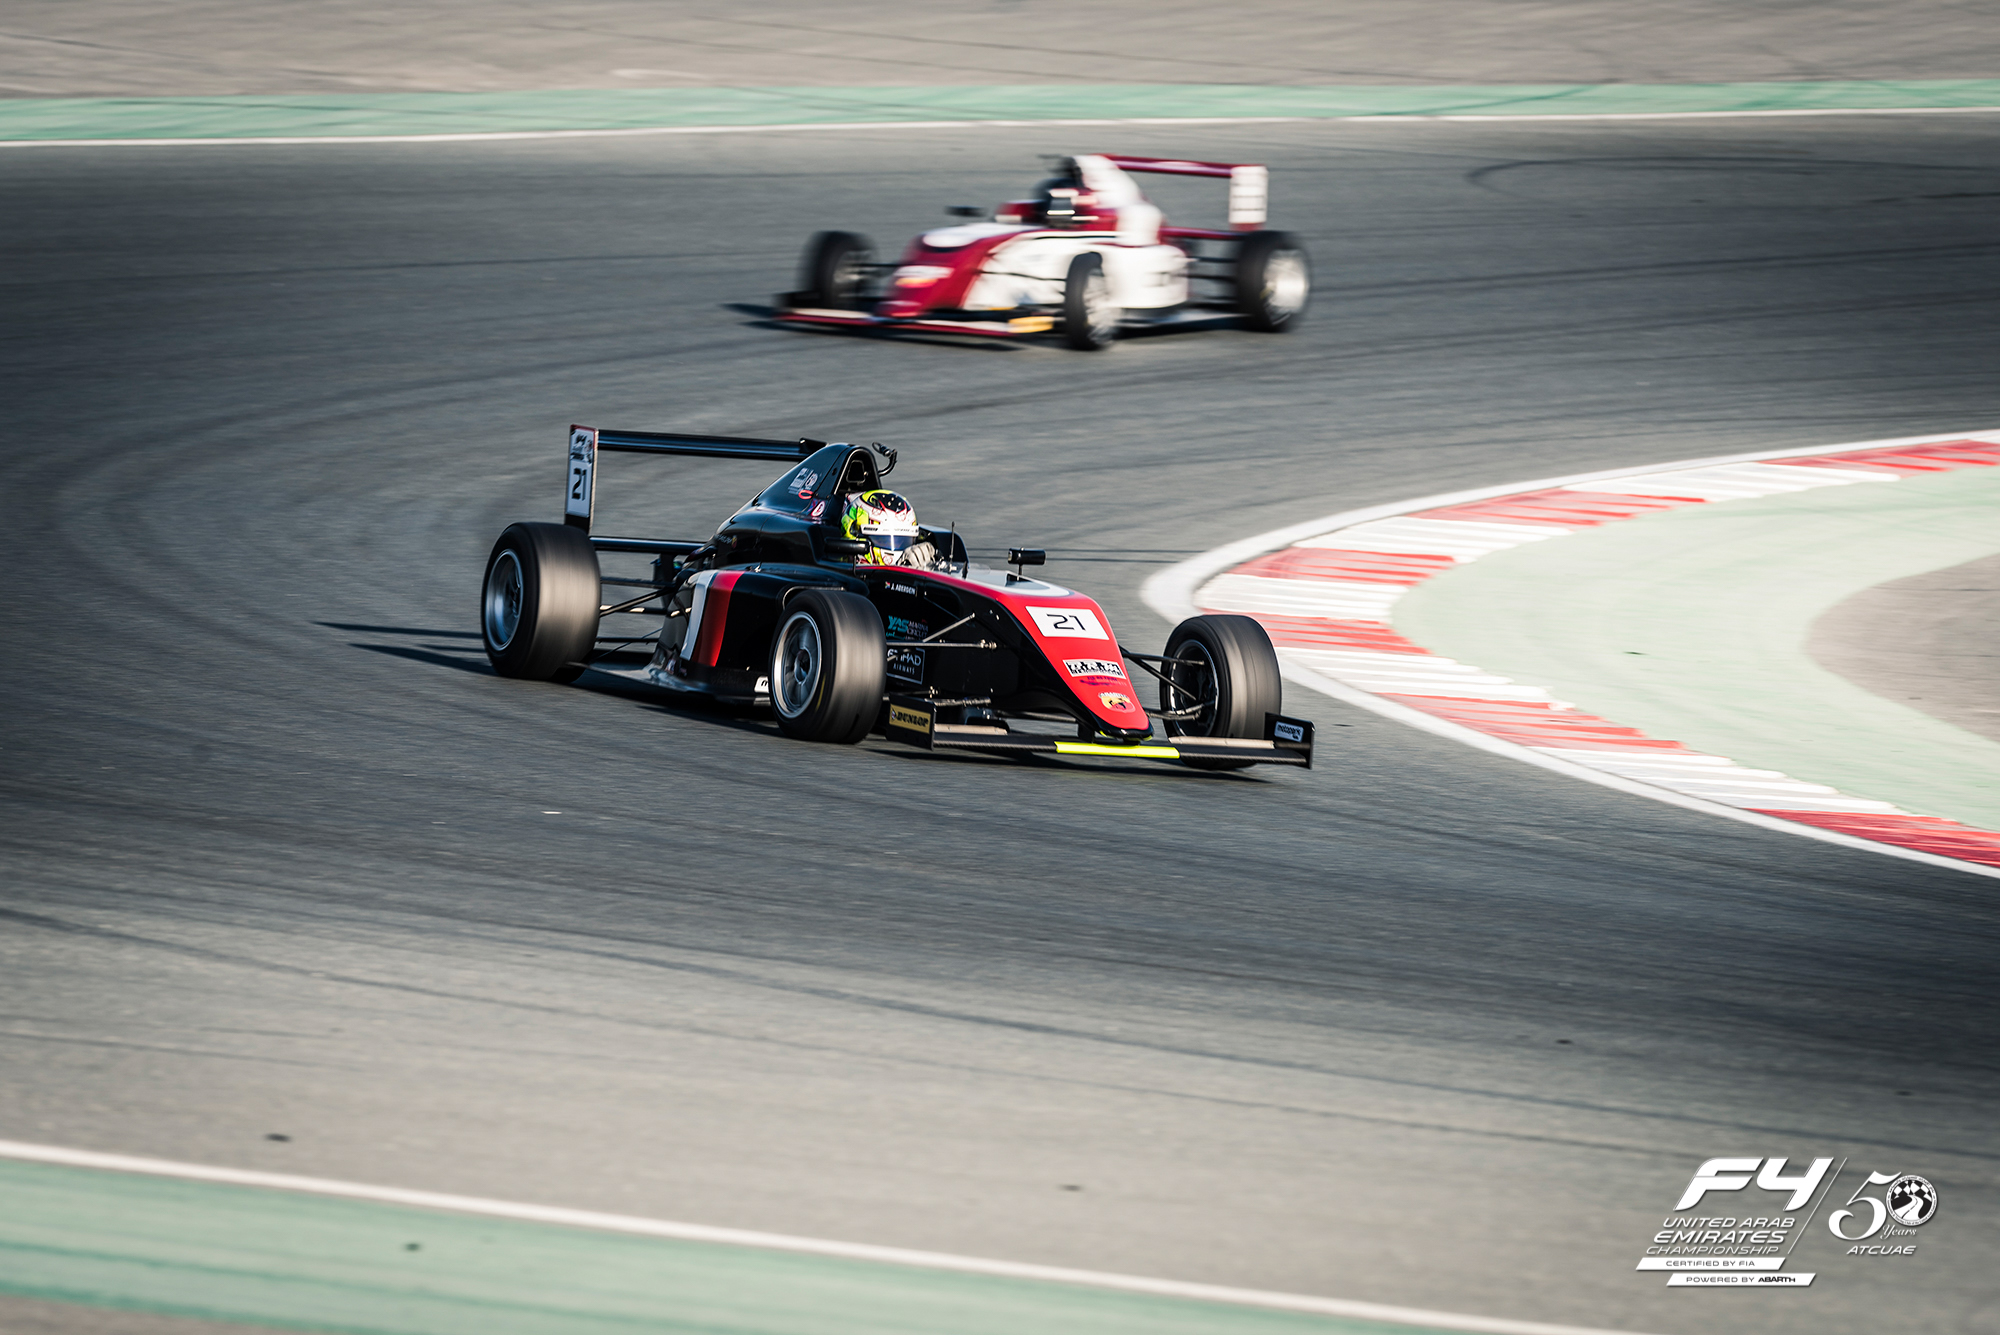 2016 10 30   Racing   Second Round   F4   Dubai    21 Of 34